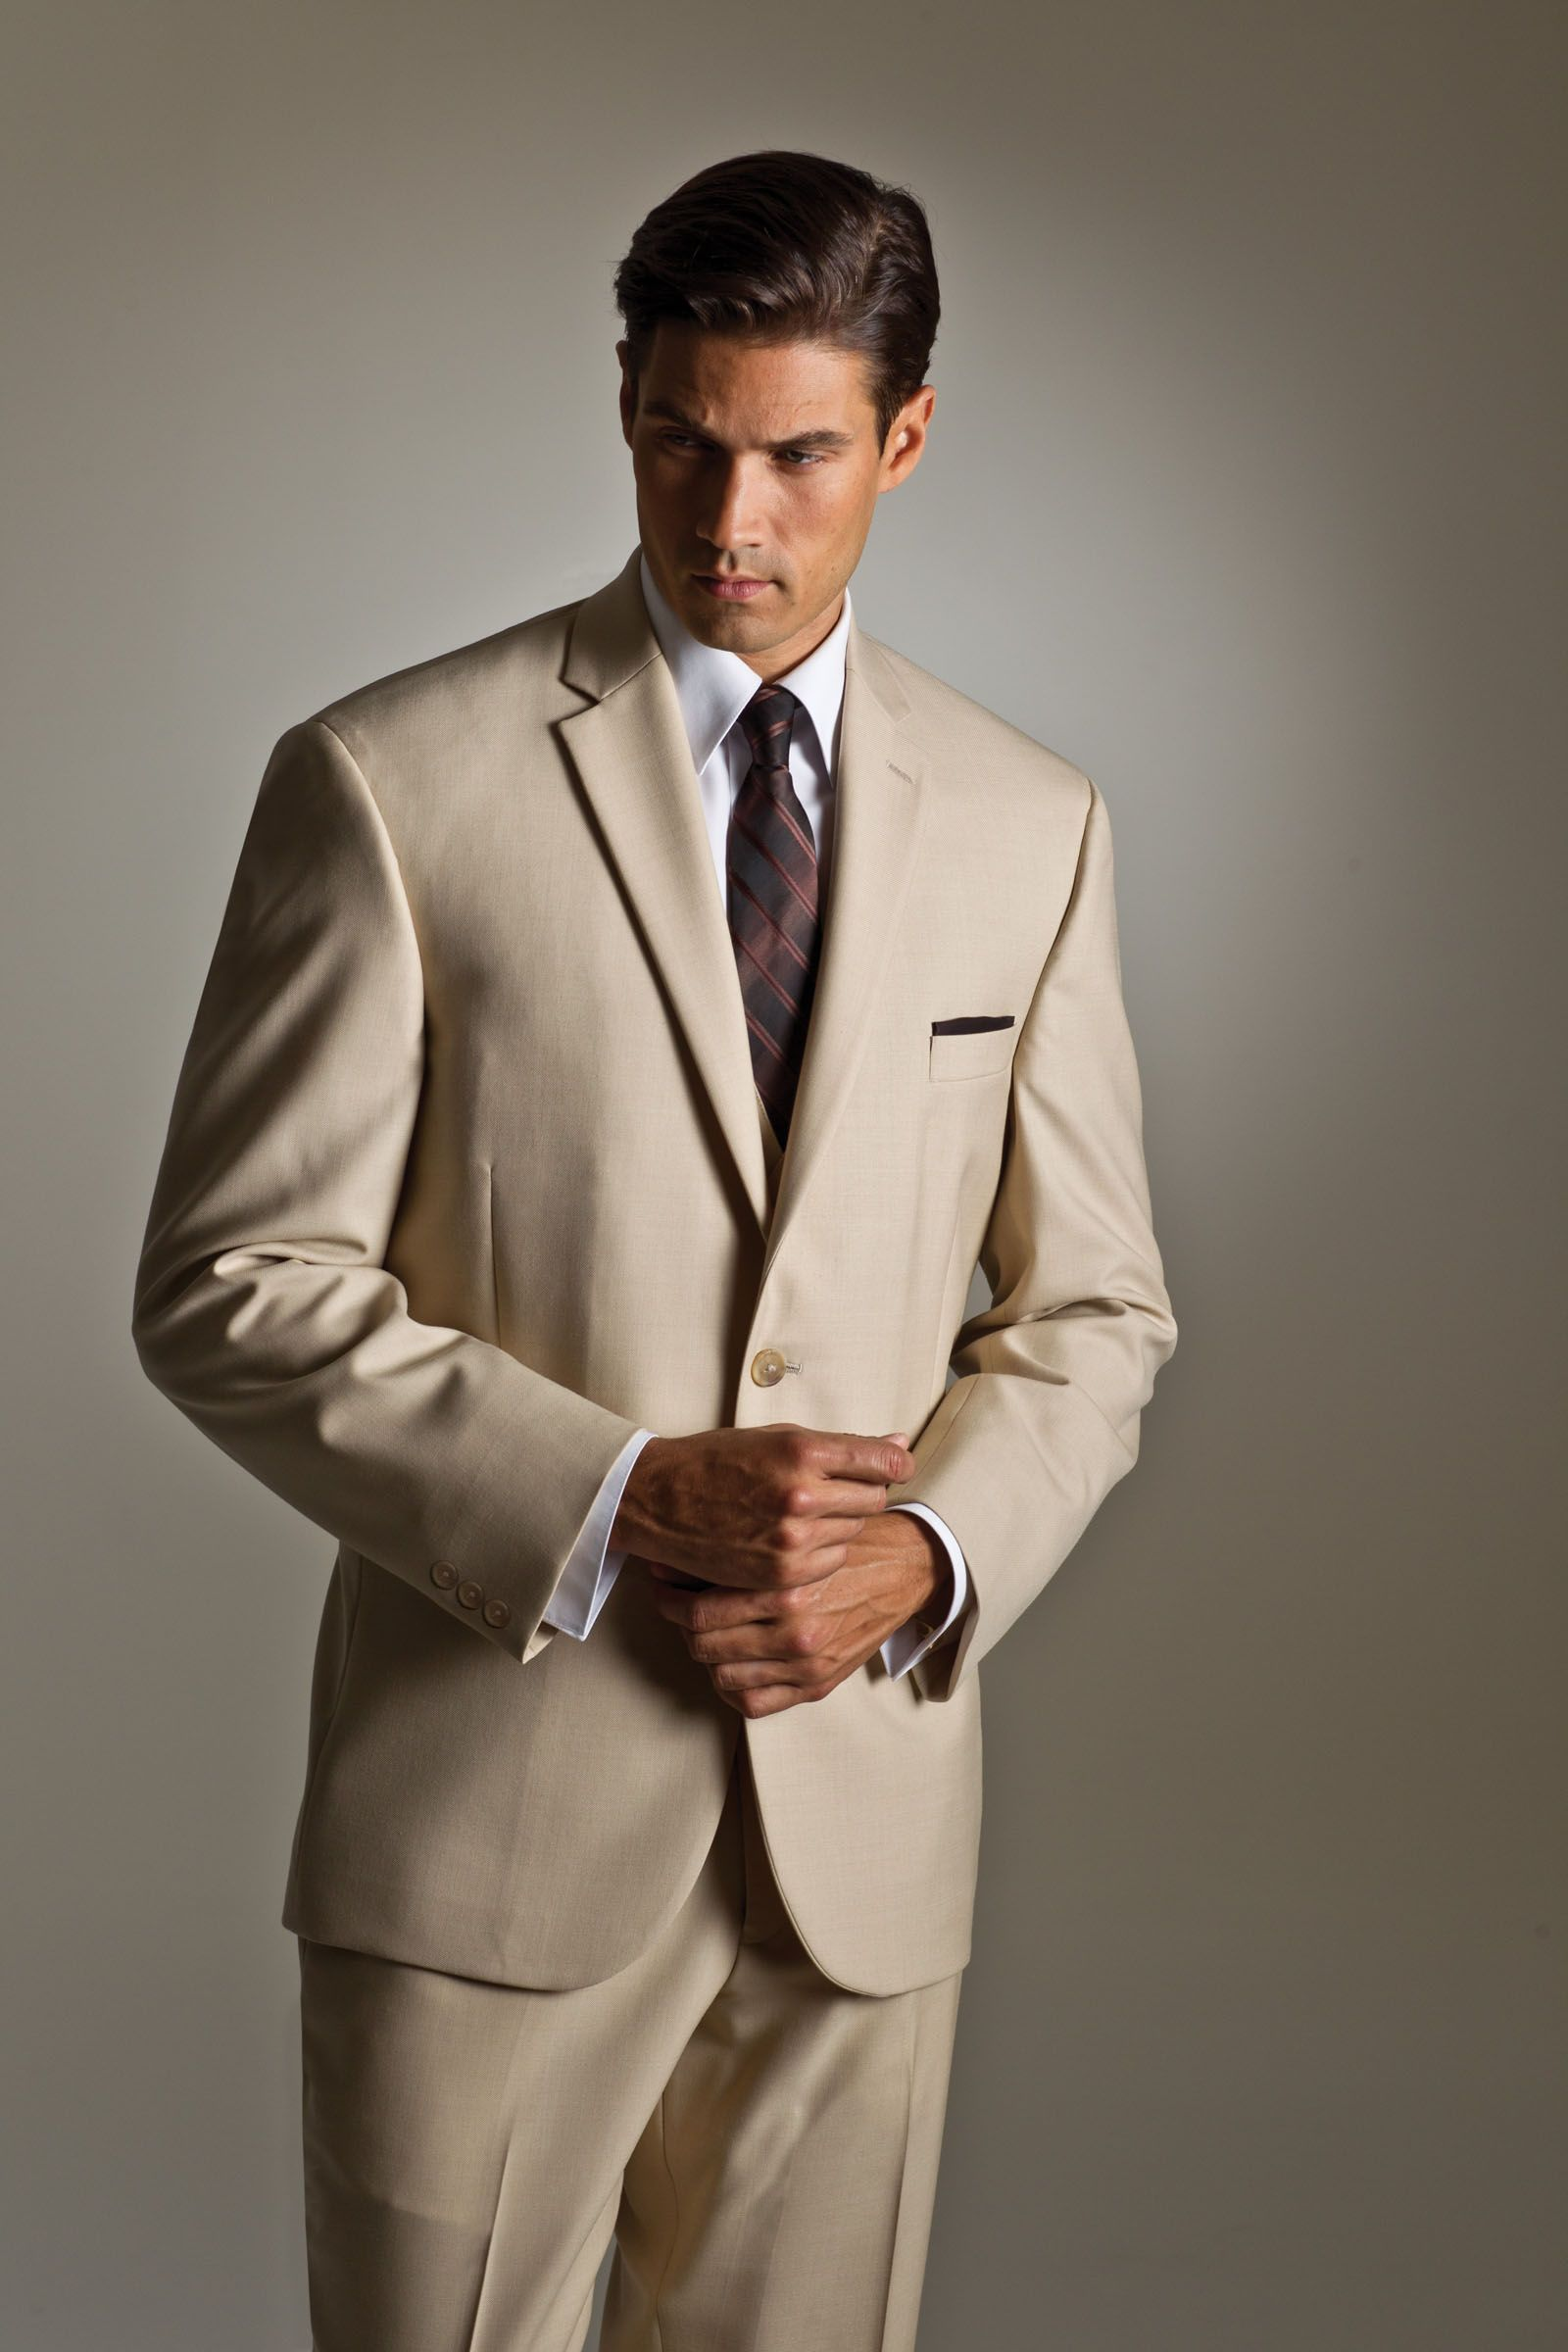 tuxedo buddhist single men We are a complete online store offering superb quality men's suits, party suits, and dress shirts at affordable prices suitusa has the latest fashion trends on women's and mens clothing.